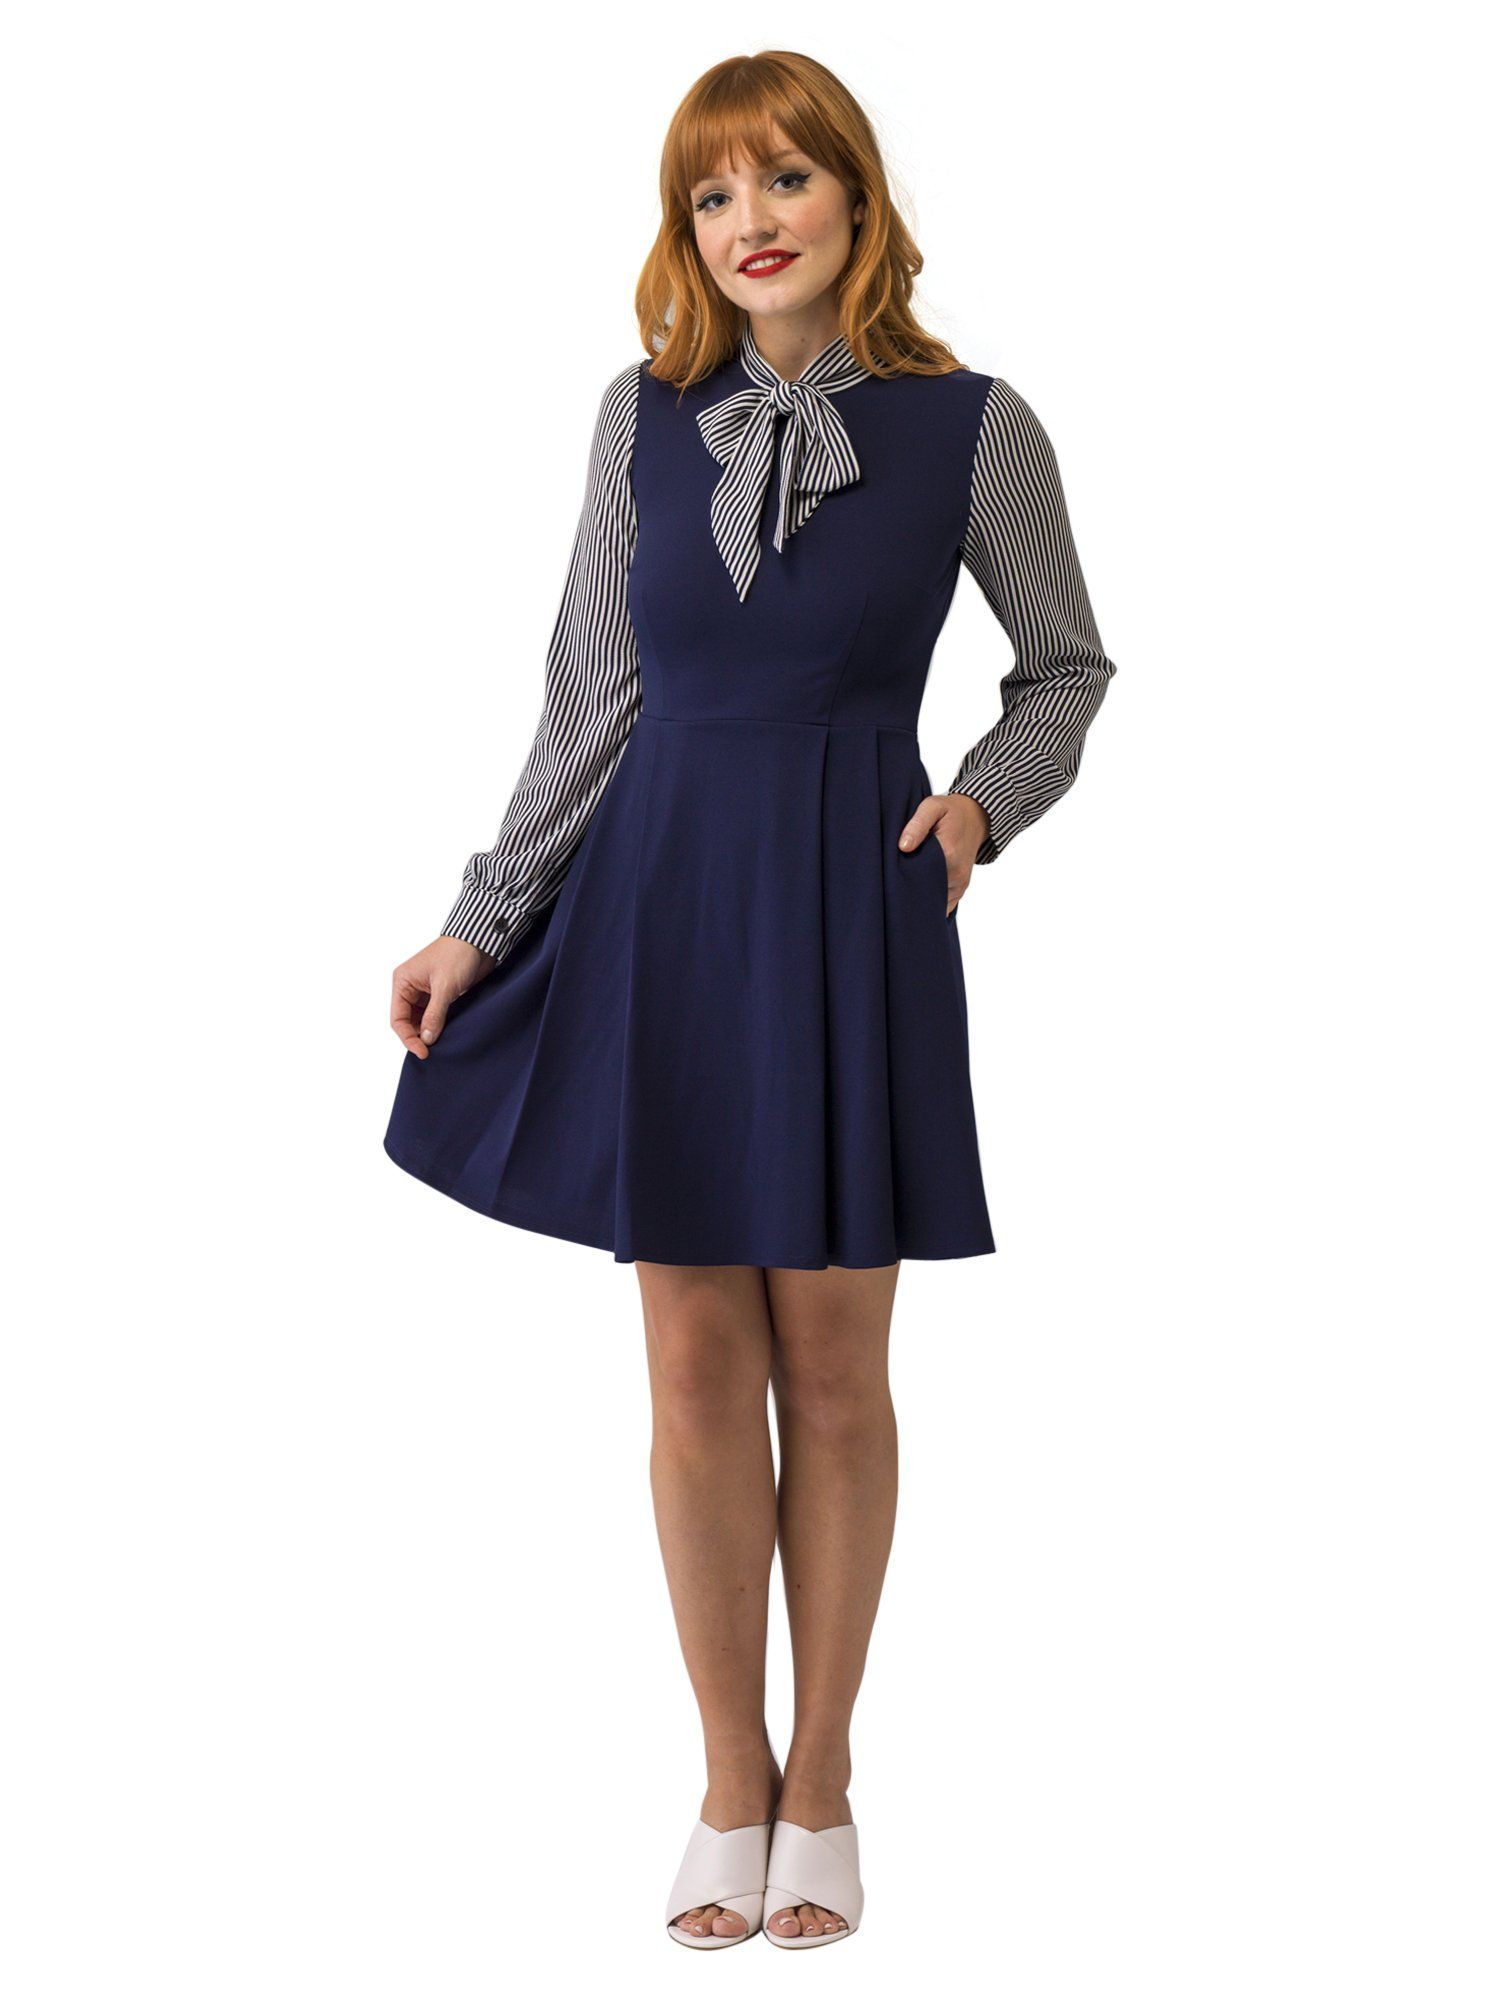 7a66354f42 Navy Dress with Navy and White Polka Dot Long Sleeves and Neck Bow. Find  this Pin and more on Products by Smak Parlour.